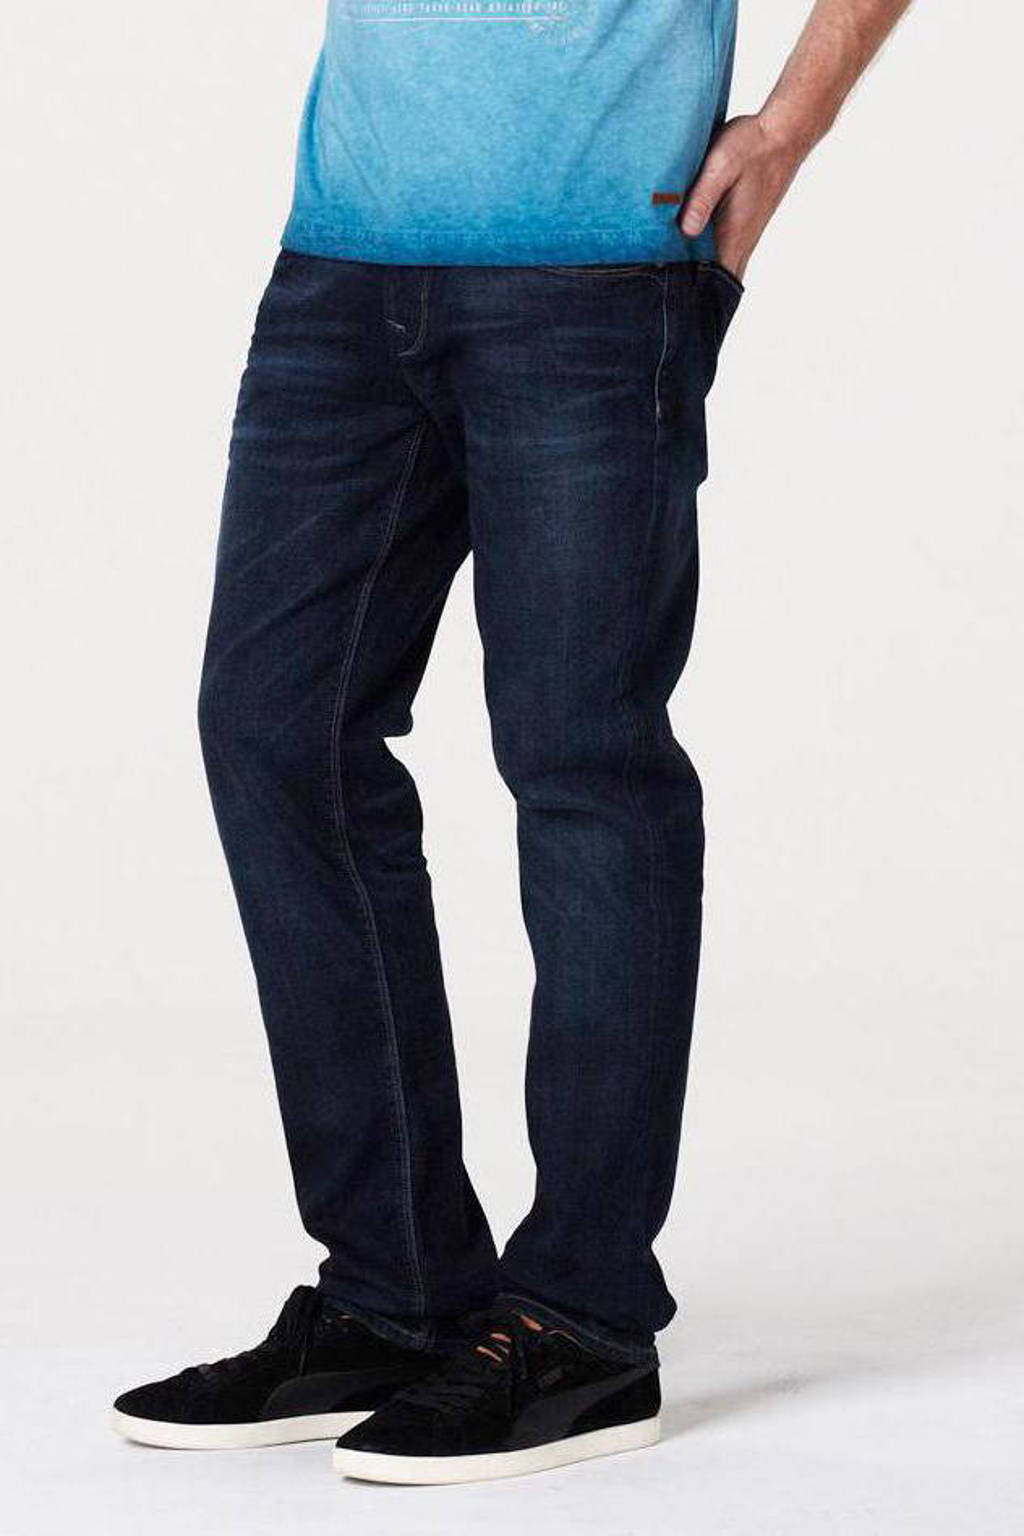 Vanguard tapered fit jeans V7 Rider, Denim blauw